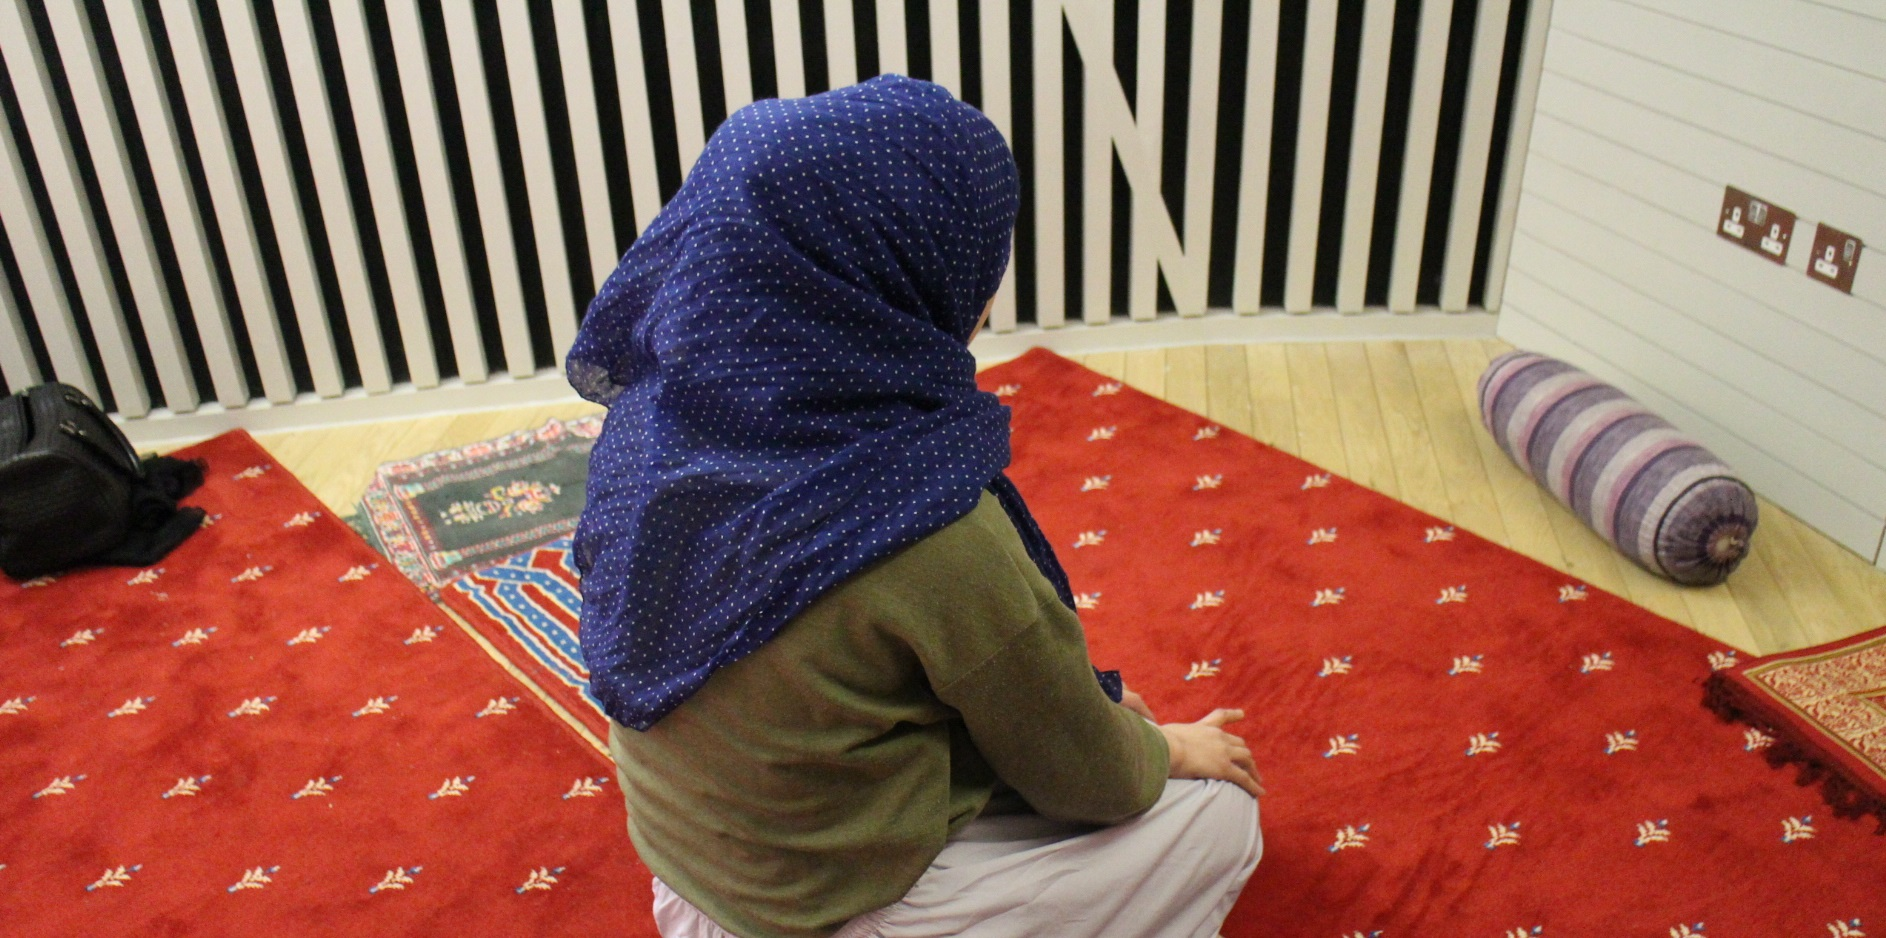 Muslim woman praying kneeling on the floor in the Faith Centre Islamic Prayer Room